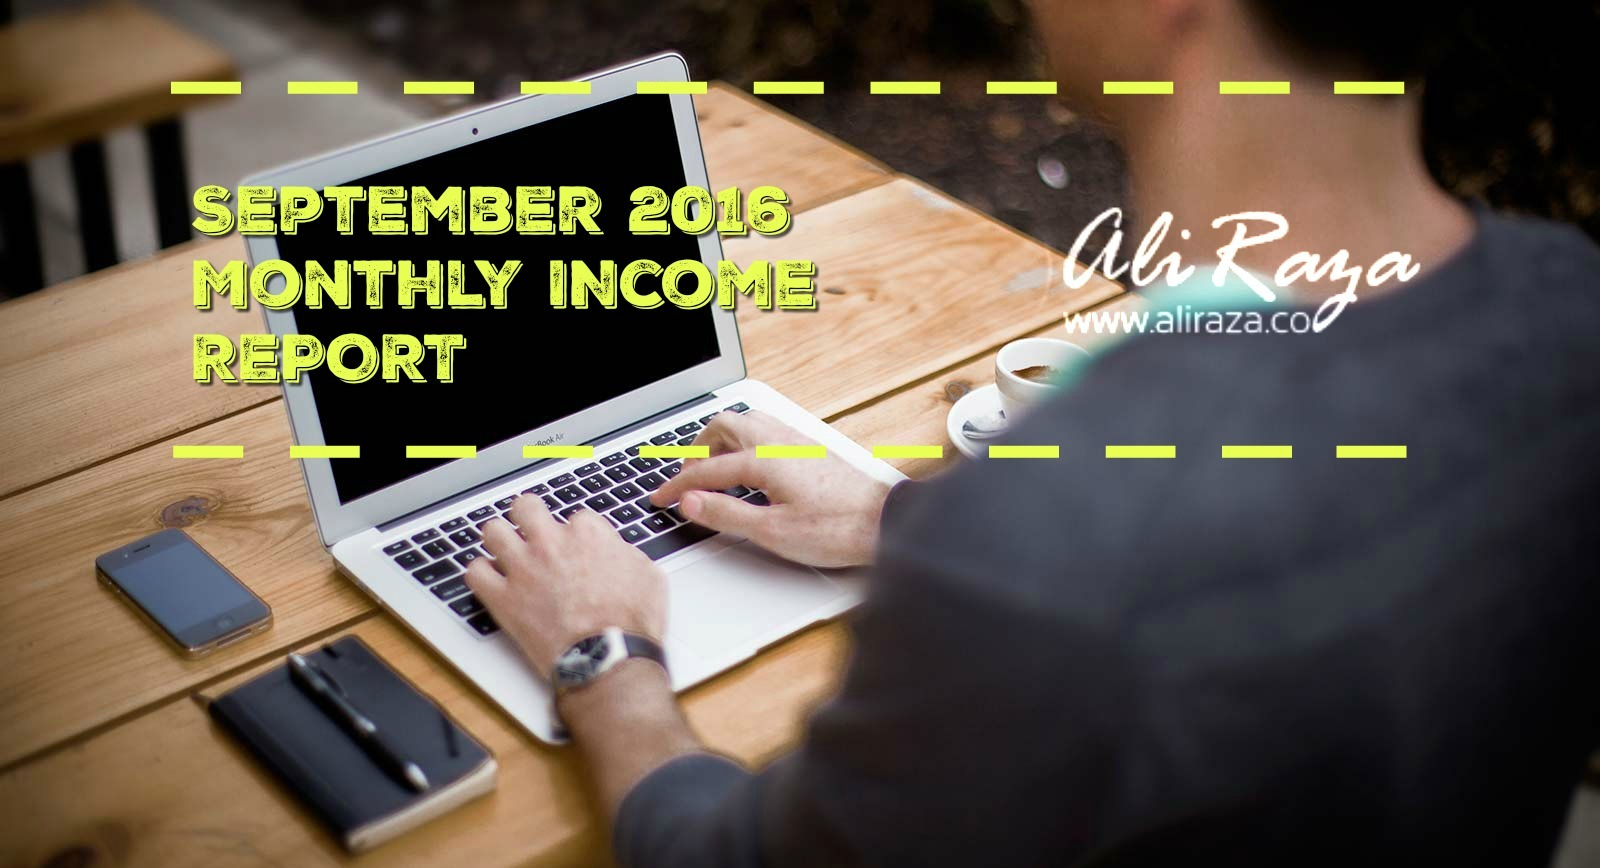 september monthly income report 2016